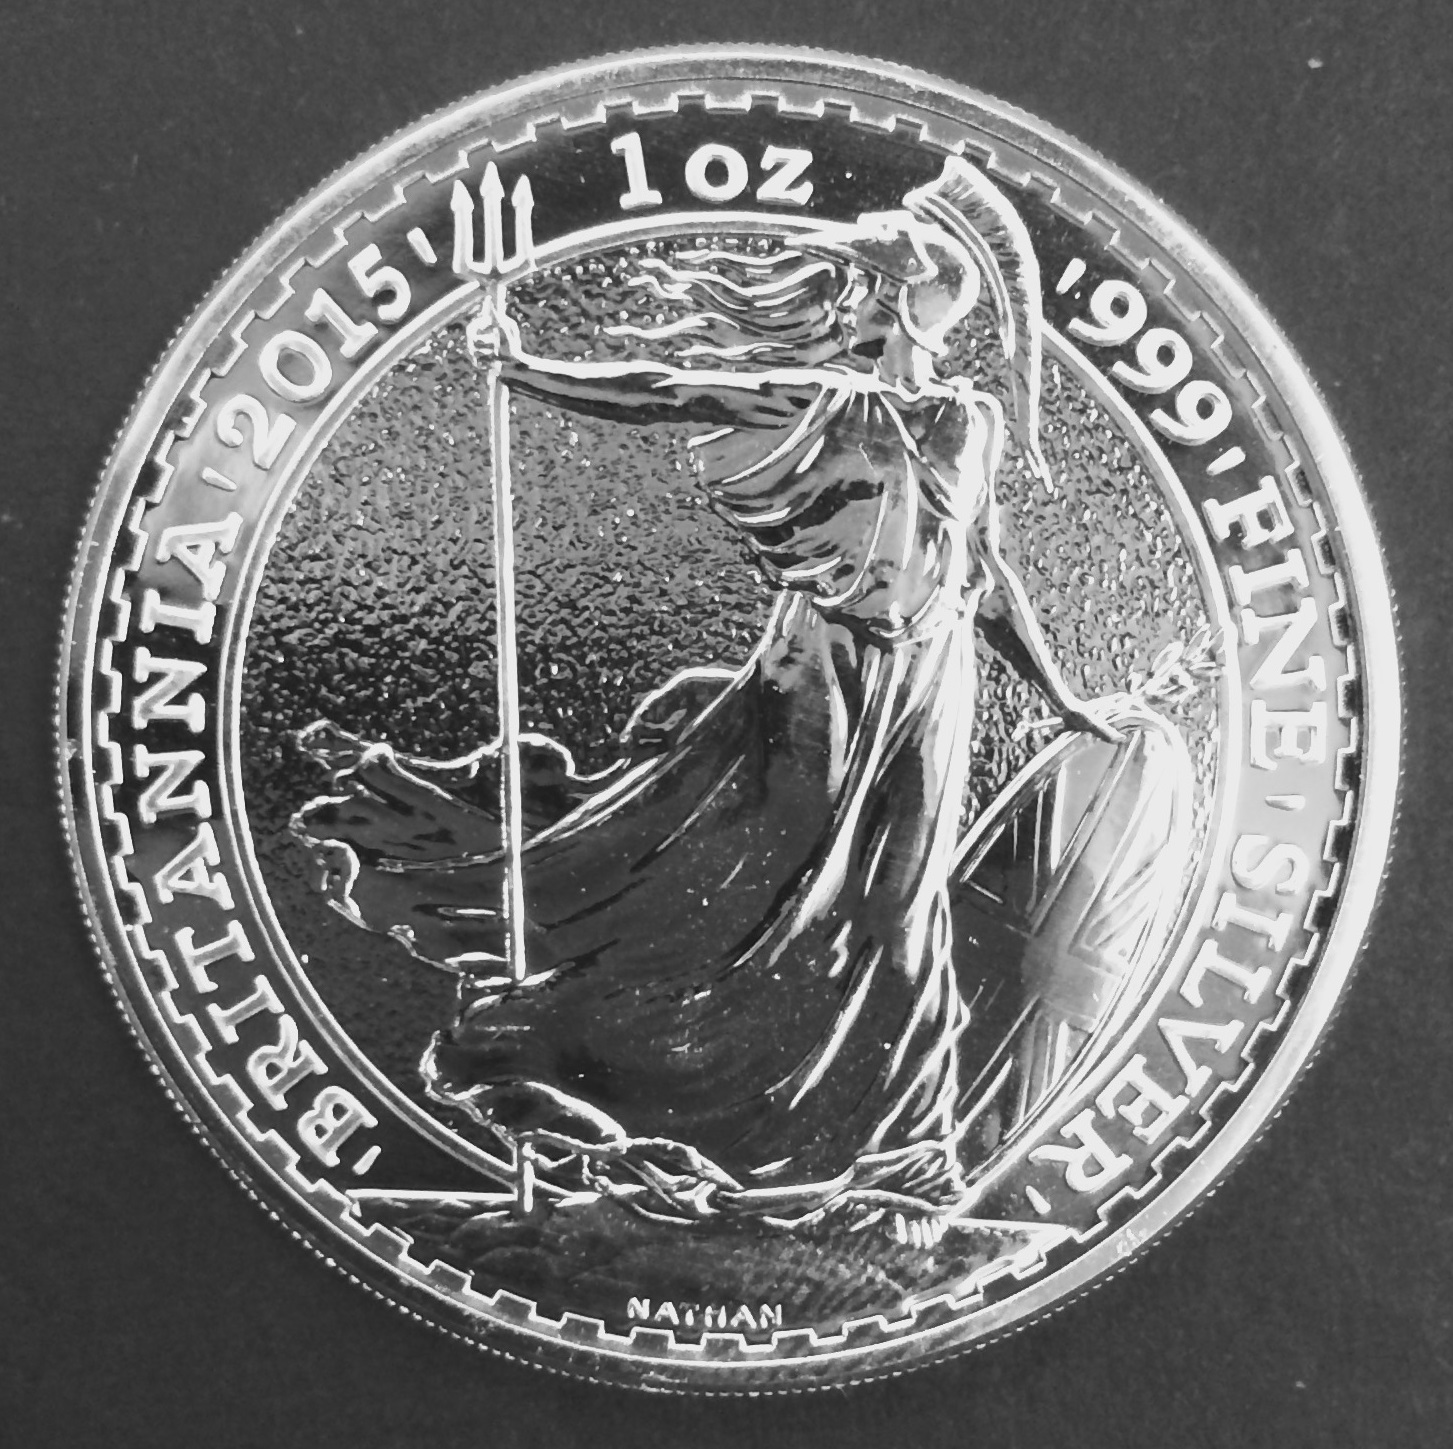 2015 1oz britannia - Announcing: The return of Britannia to our coins